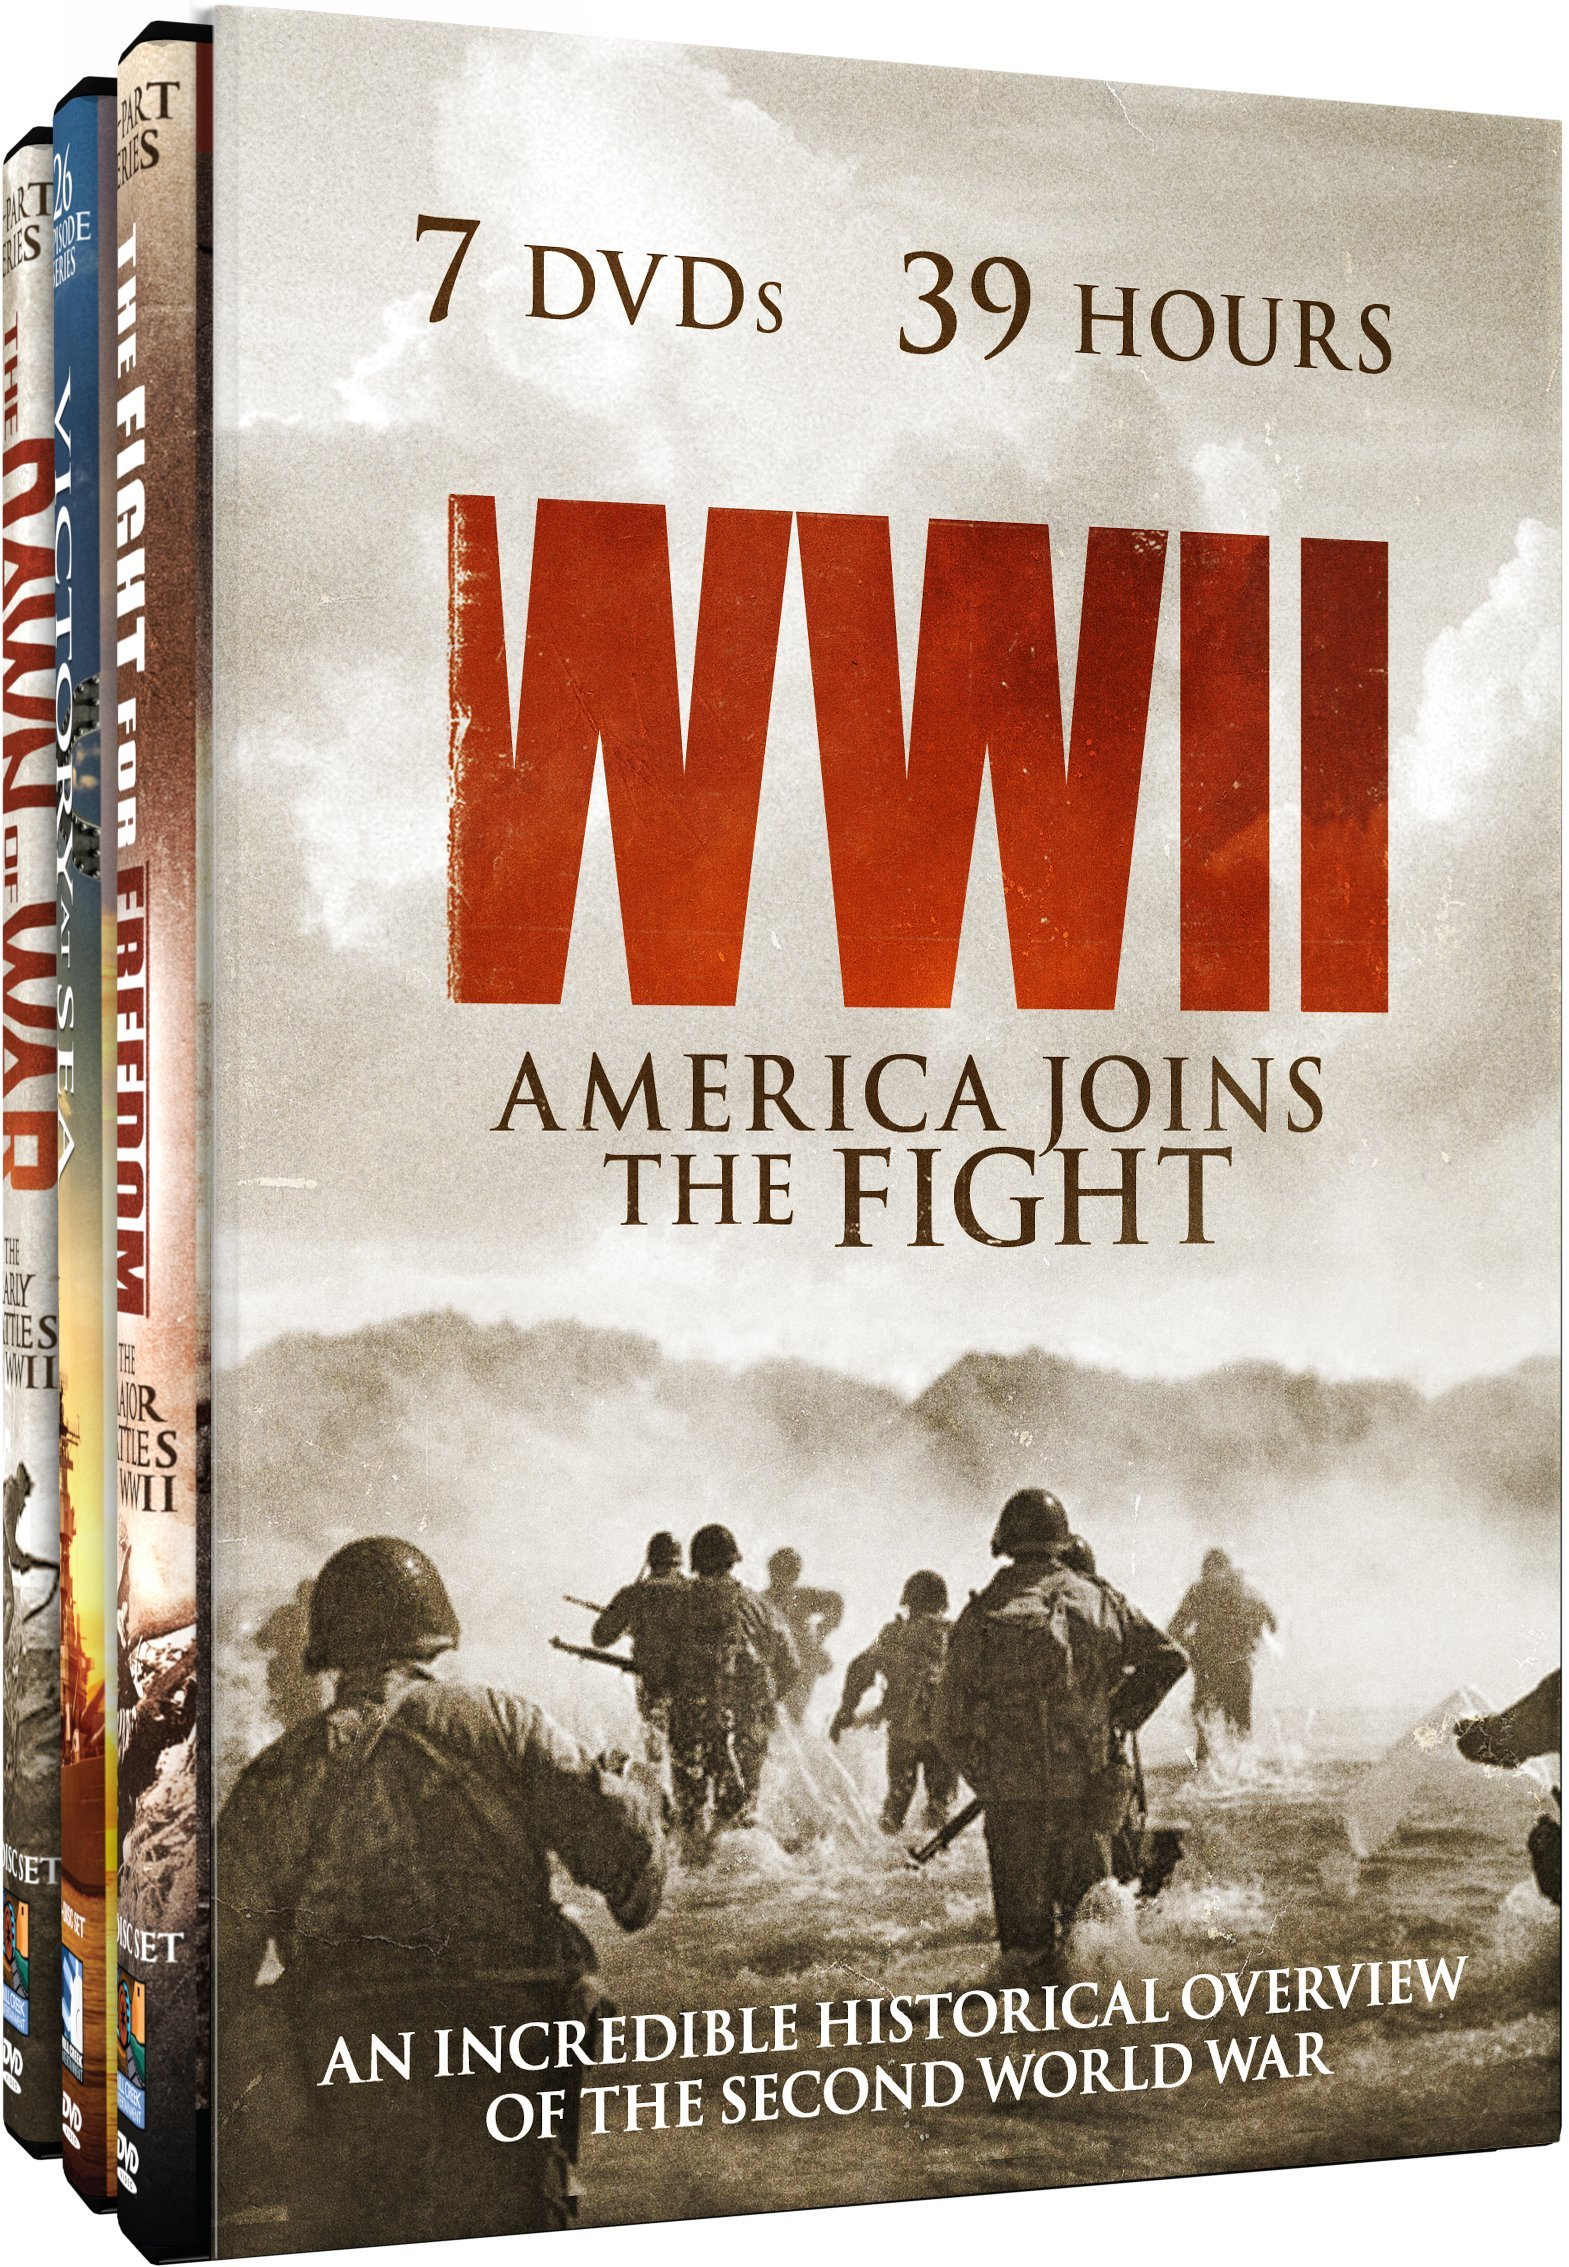 WWII America Joins the Fight